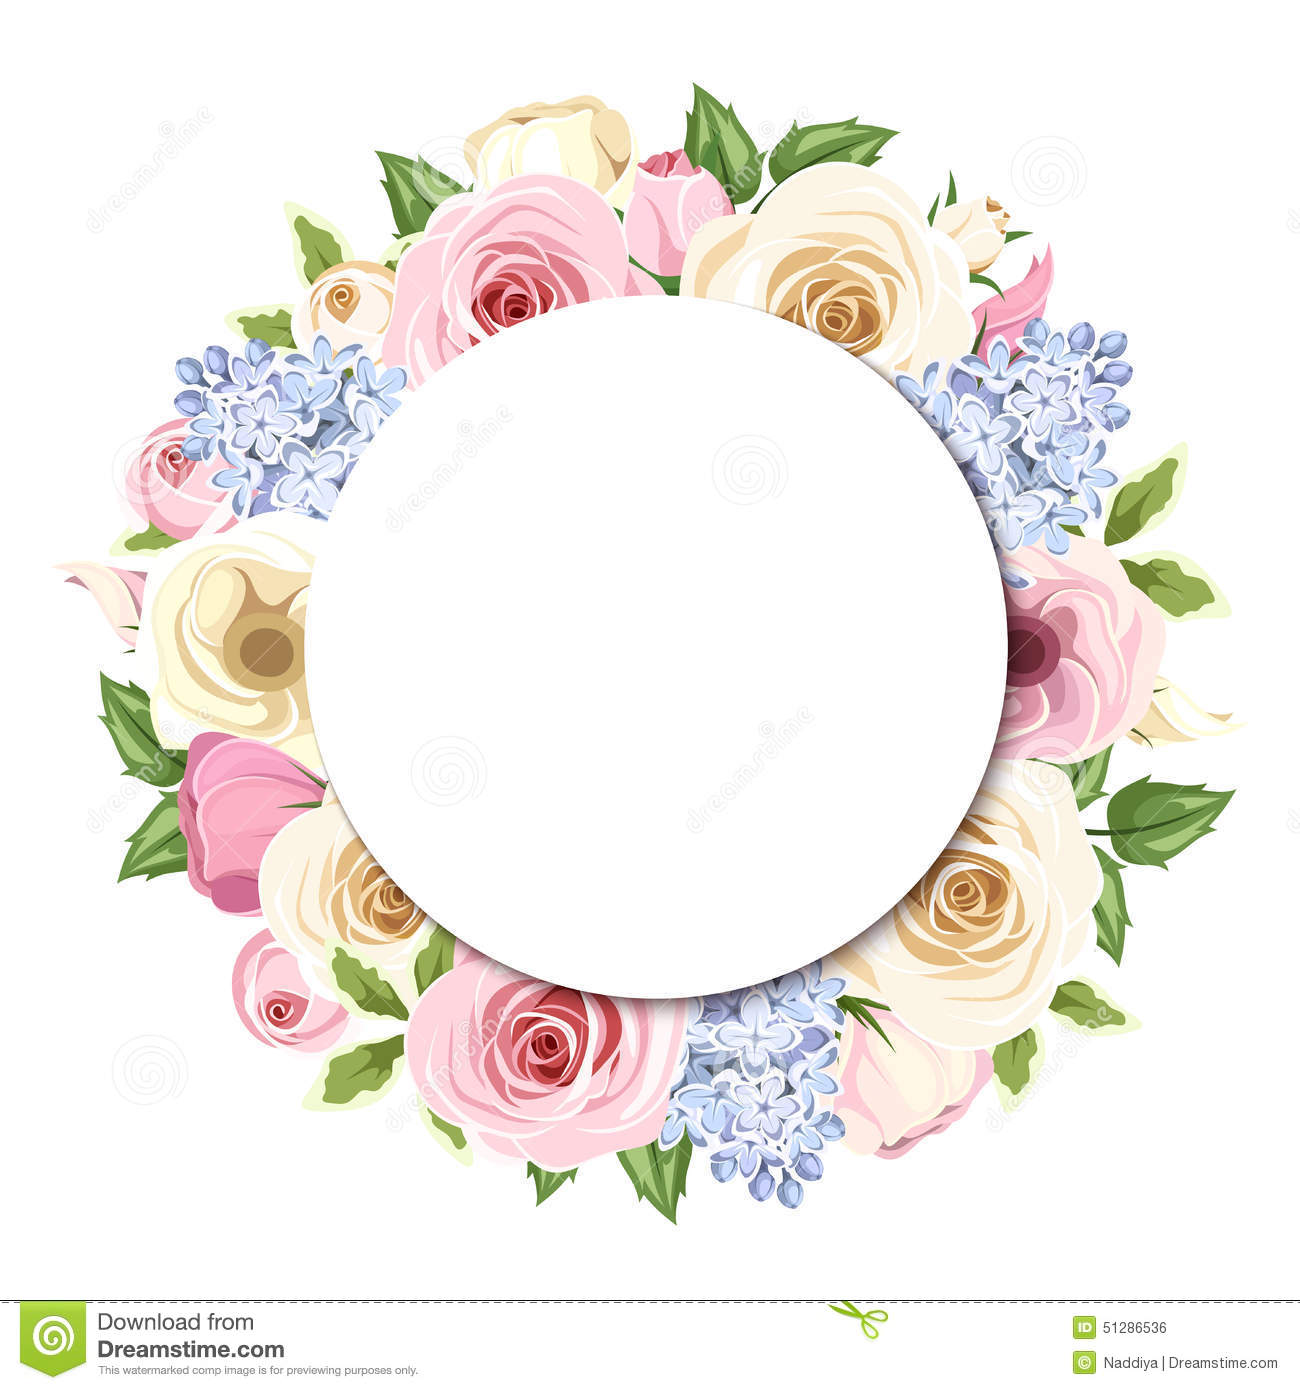 Background With Pink, White And Blue Roses, Lisianthus And